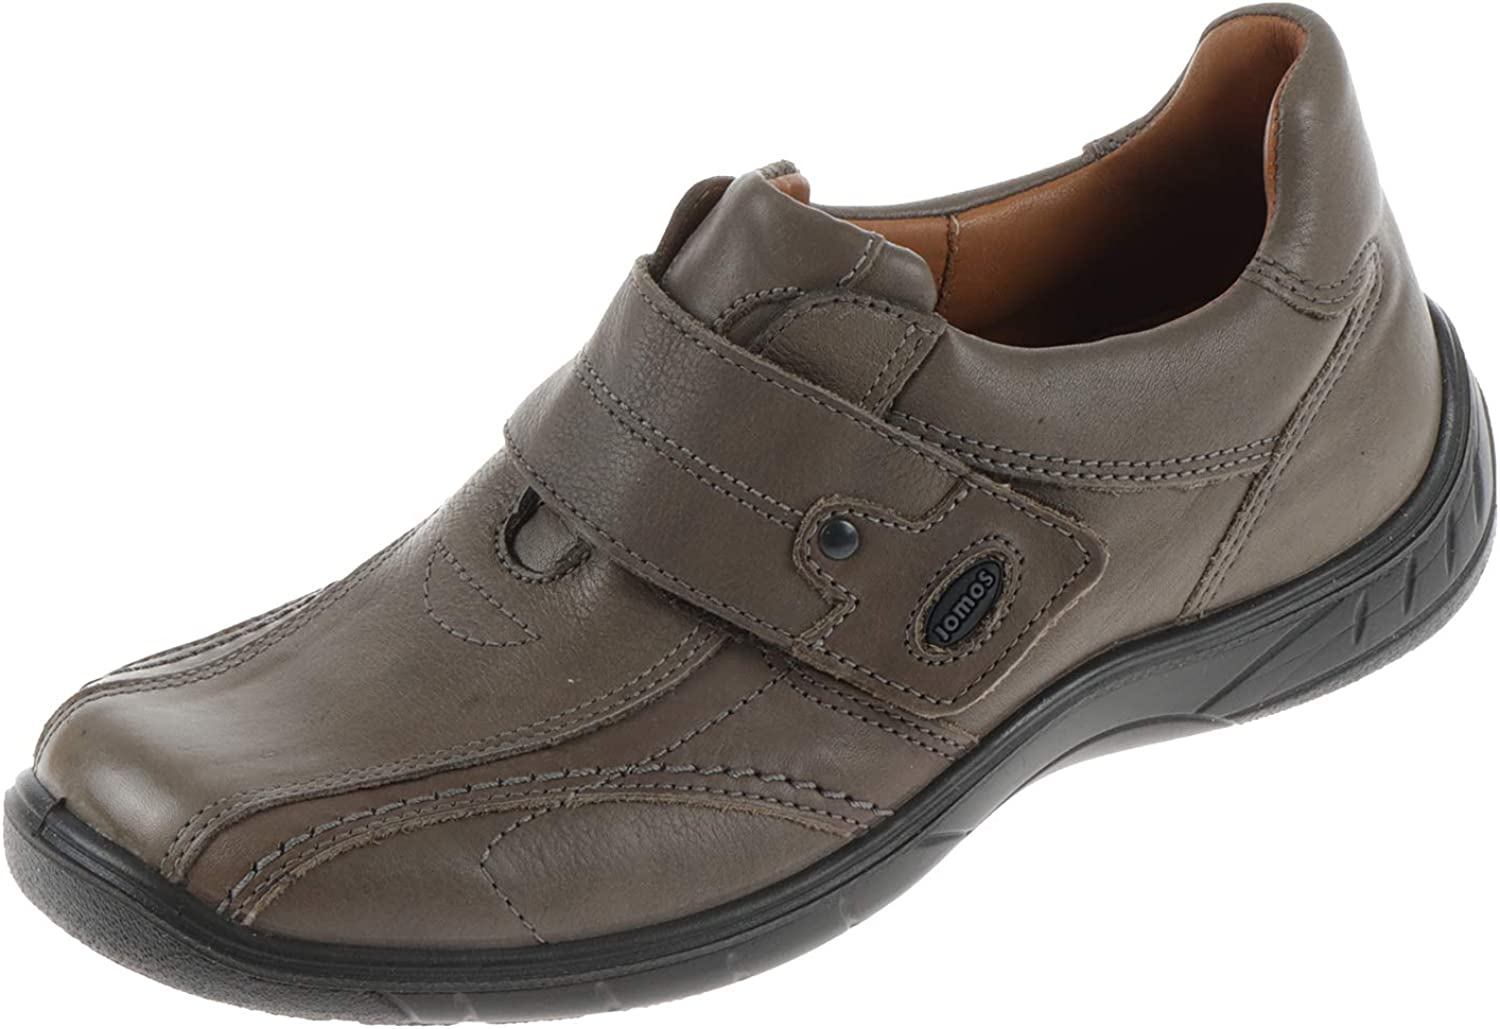 Jomos Men's Loafer Flats Grey Smoke Toskana Retro